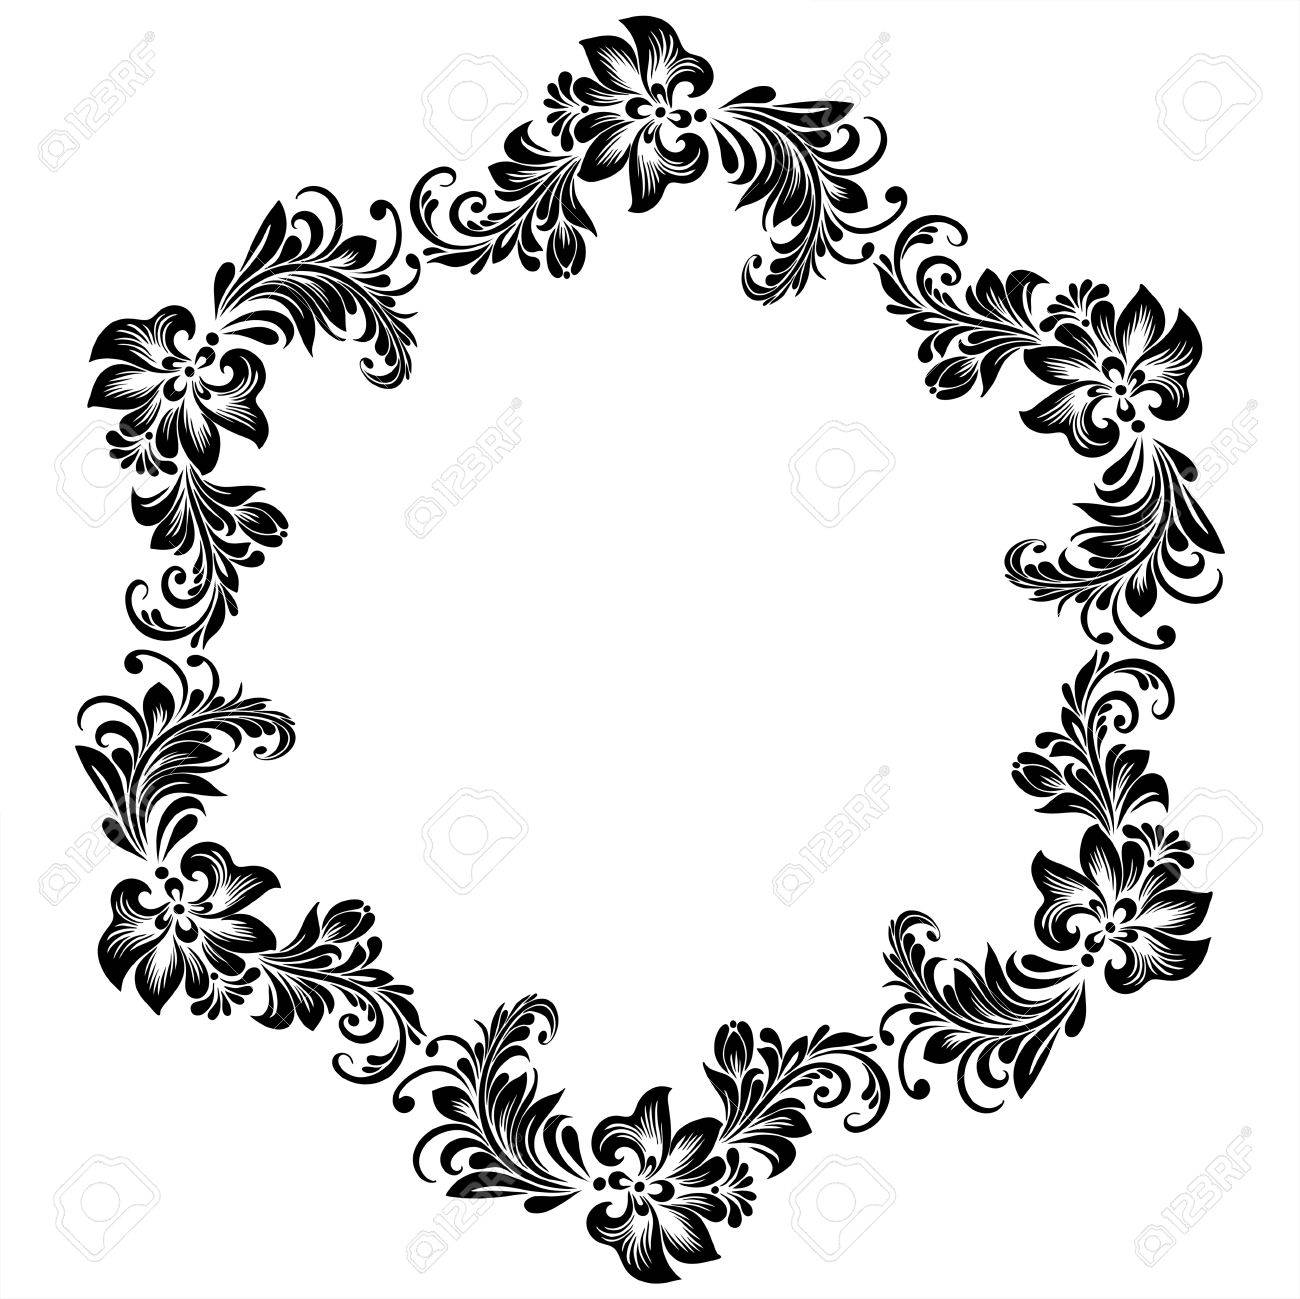 A Vector Round Frame For Design With Stylized Floral Ornament ...